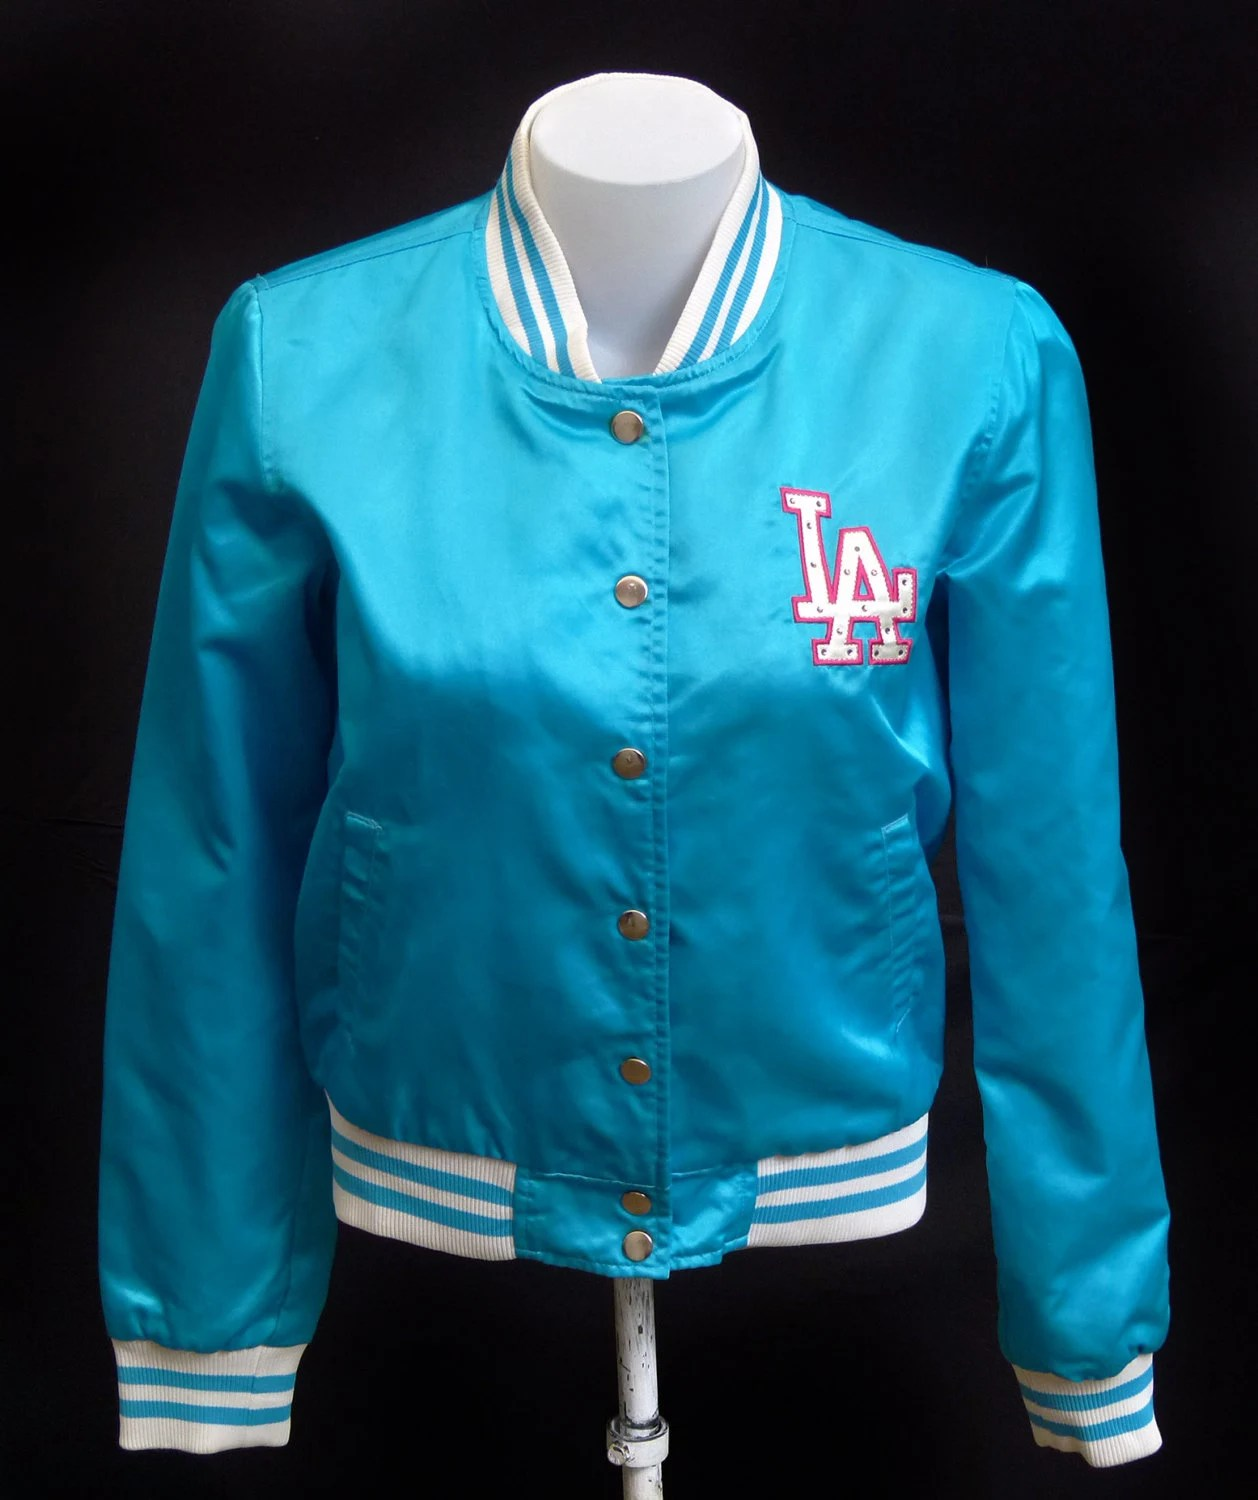 los angeles dodgers jacket blue satin mlb womans clothing